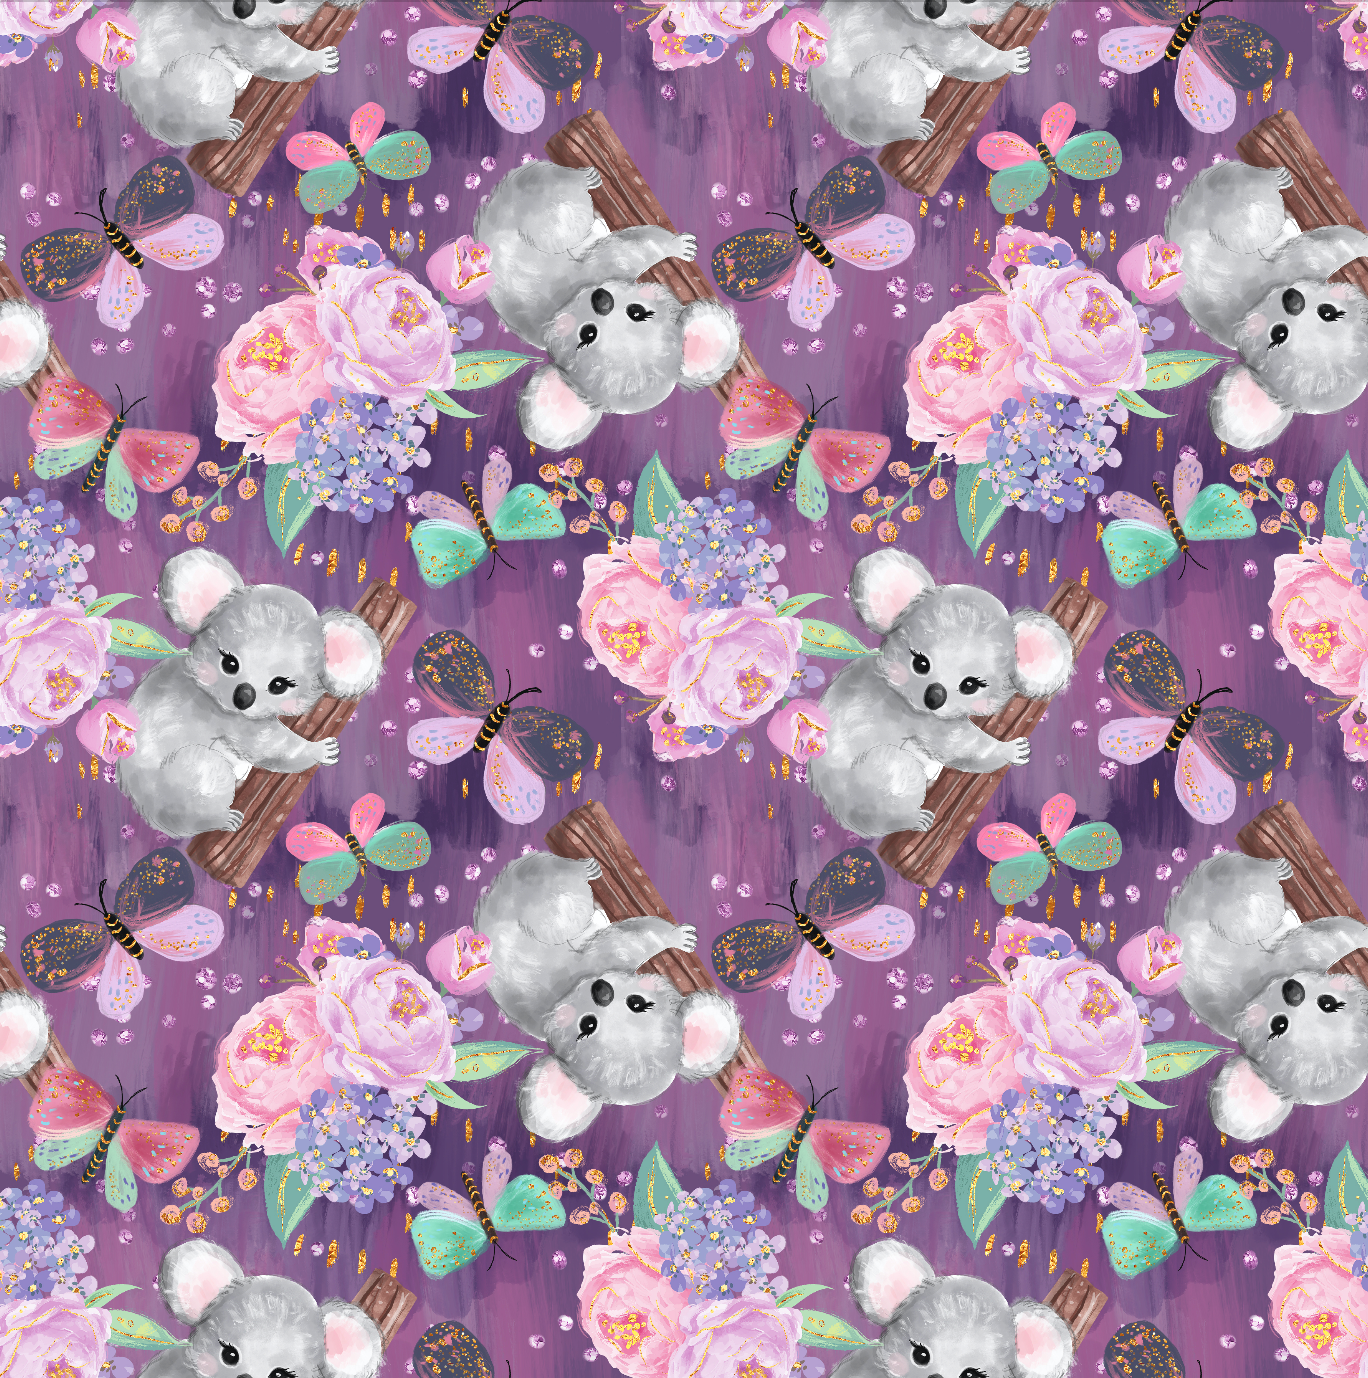 IN STOCK - Cuddly Koalas Purple - WOVEN COTTON